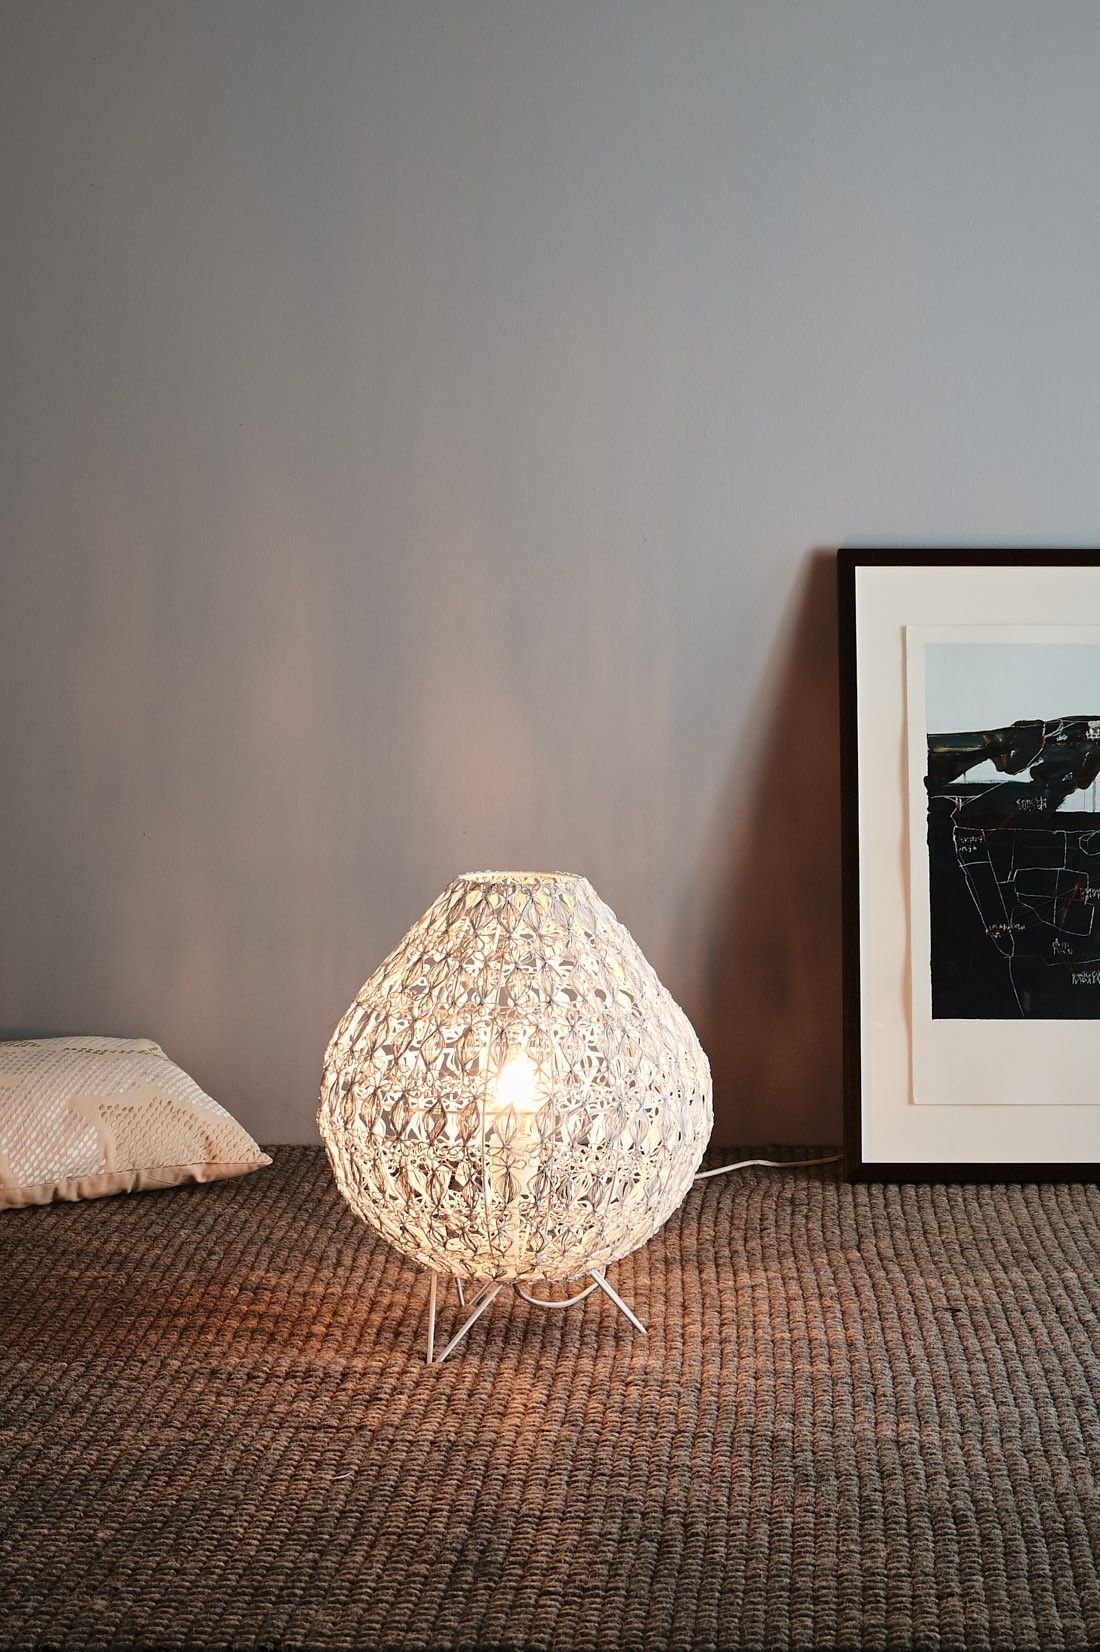 A Table Lamp In A Lotus Bud Form With A Contemporary Open Wire Weave Designed Shell Encasing A Single Globe Lamp White Table Lamp White Lamp